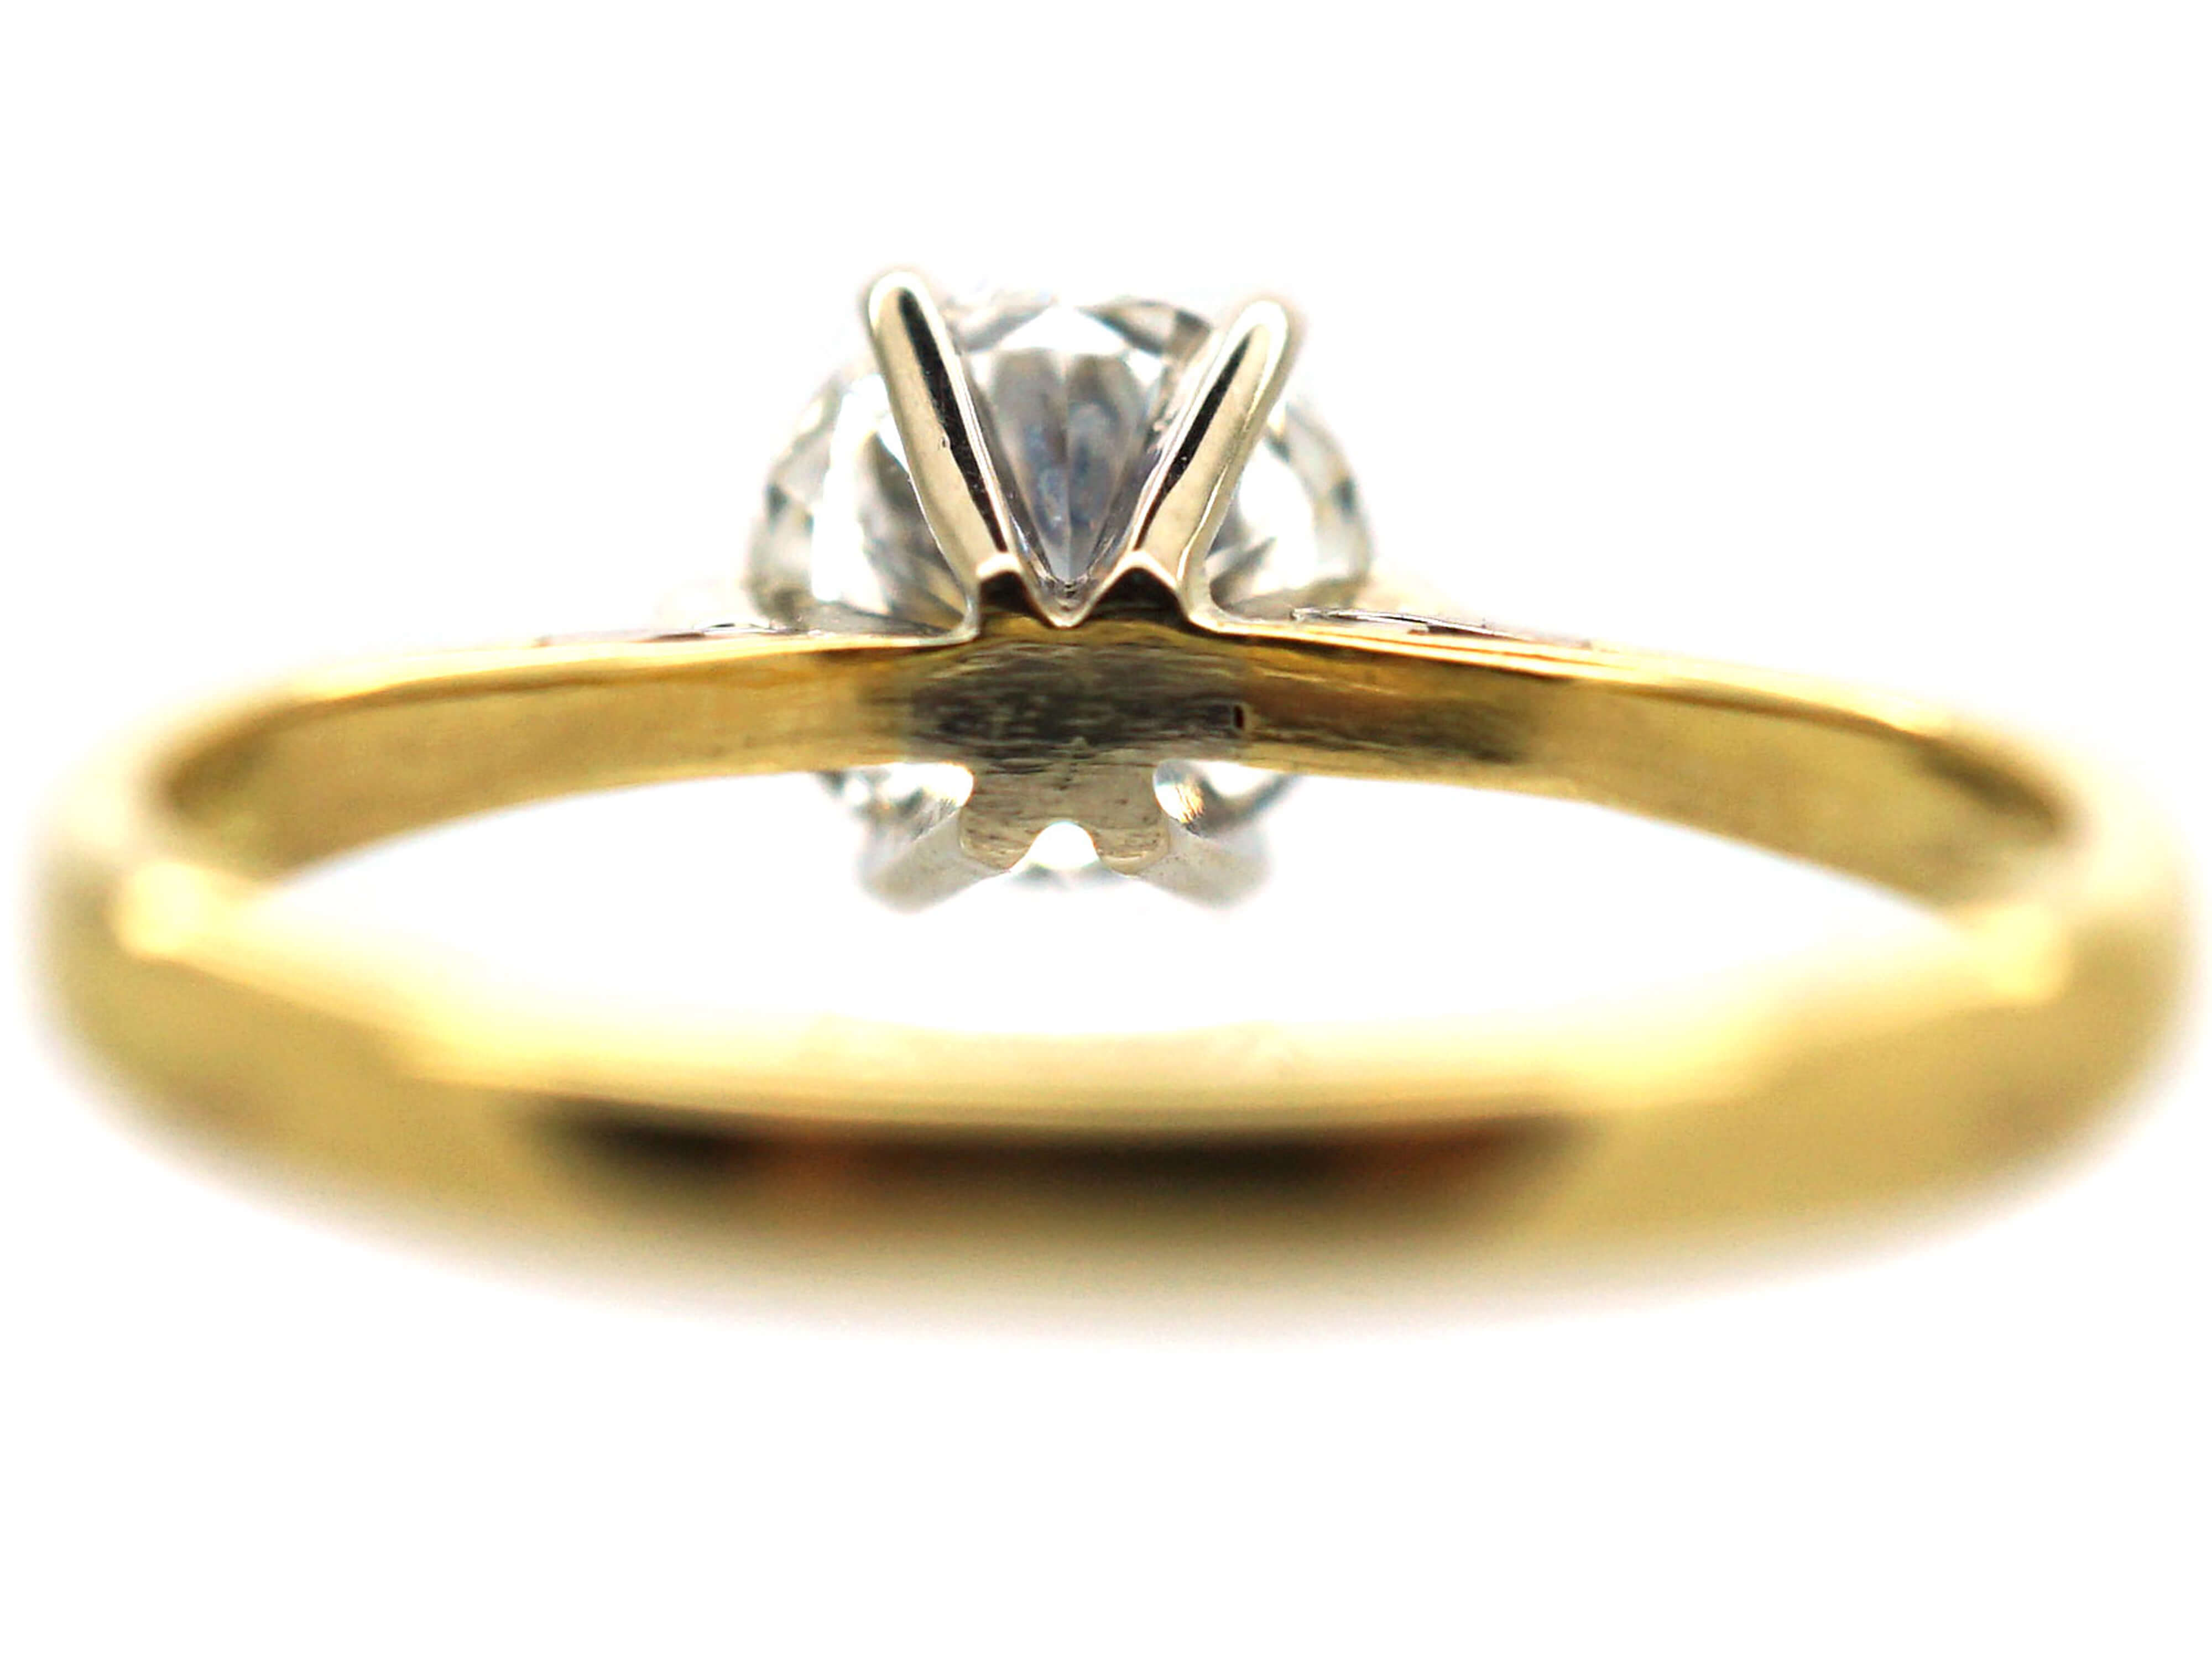 18ct Gold One Carat Diamond Solitaire Ring